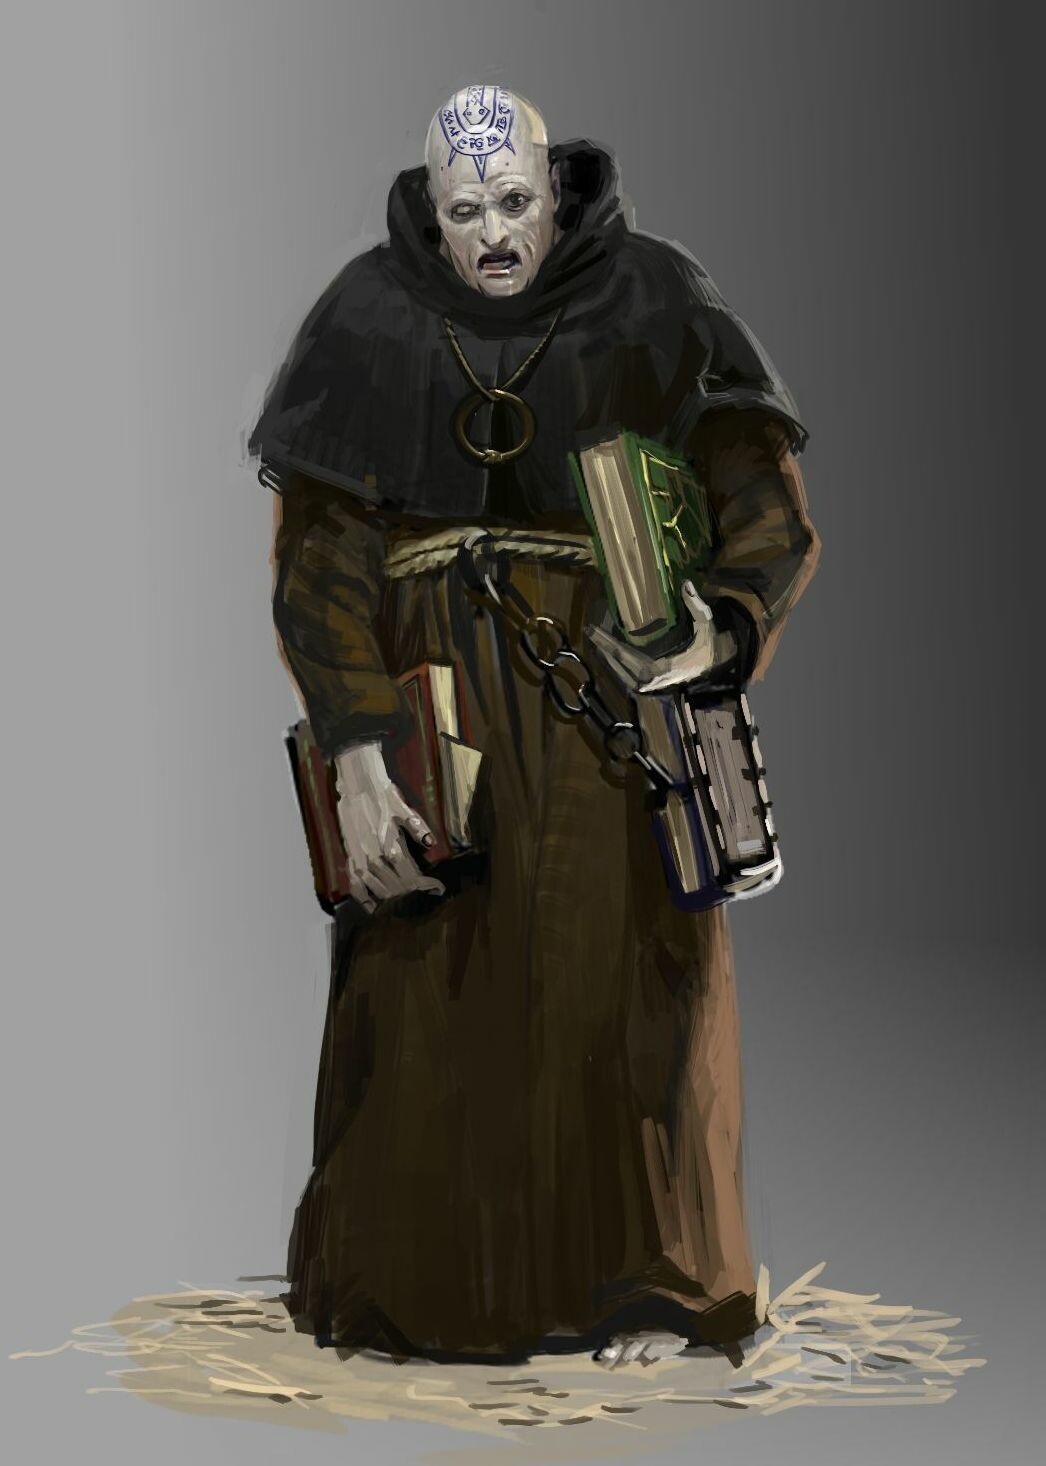 Crazy cultist monk.